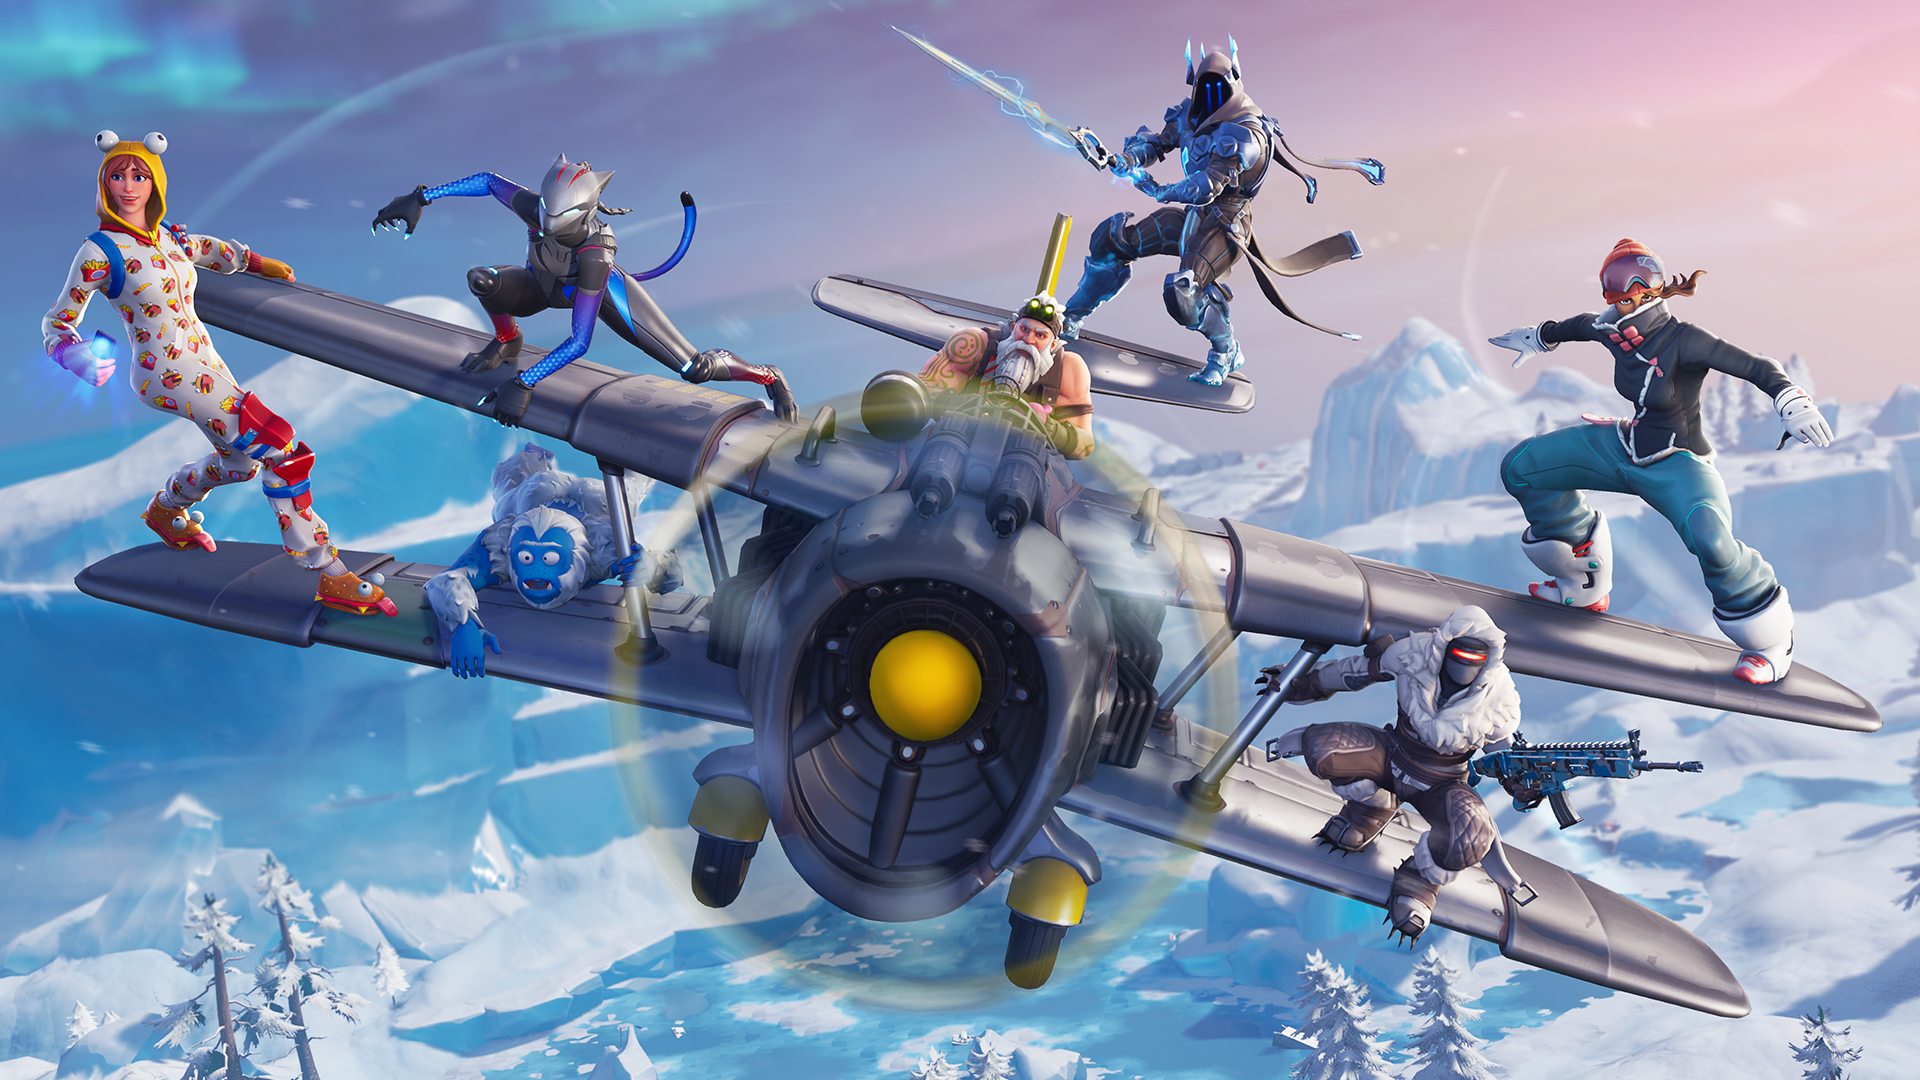 Fortnite Patch Notes V9.1 Fortnite Season 7 Week 1 Challenges With Cheat Sheet World Map